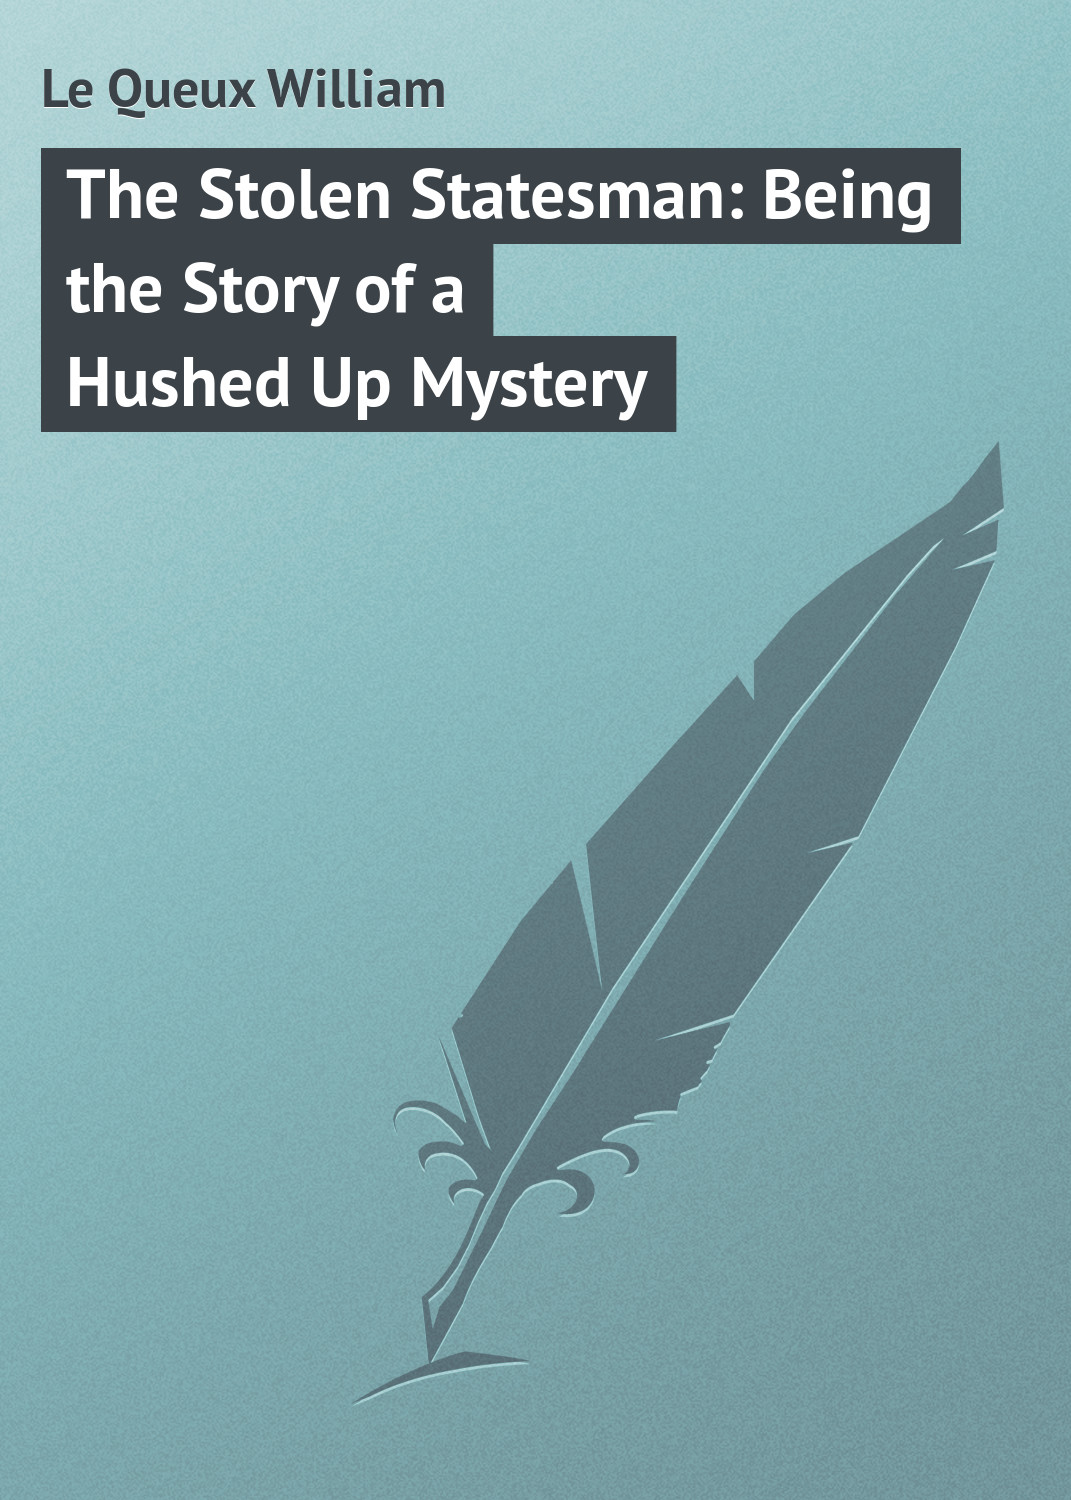 The Stolen Statesman: Being the Story of a Hushed Up Mystery